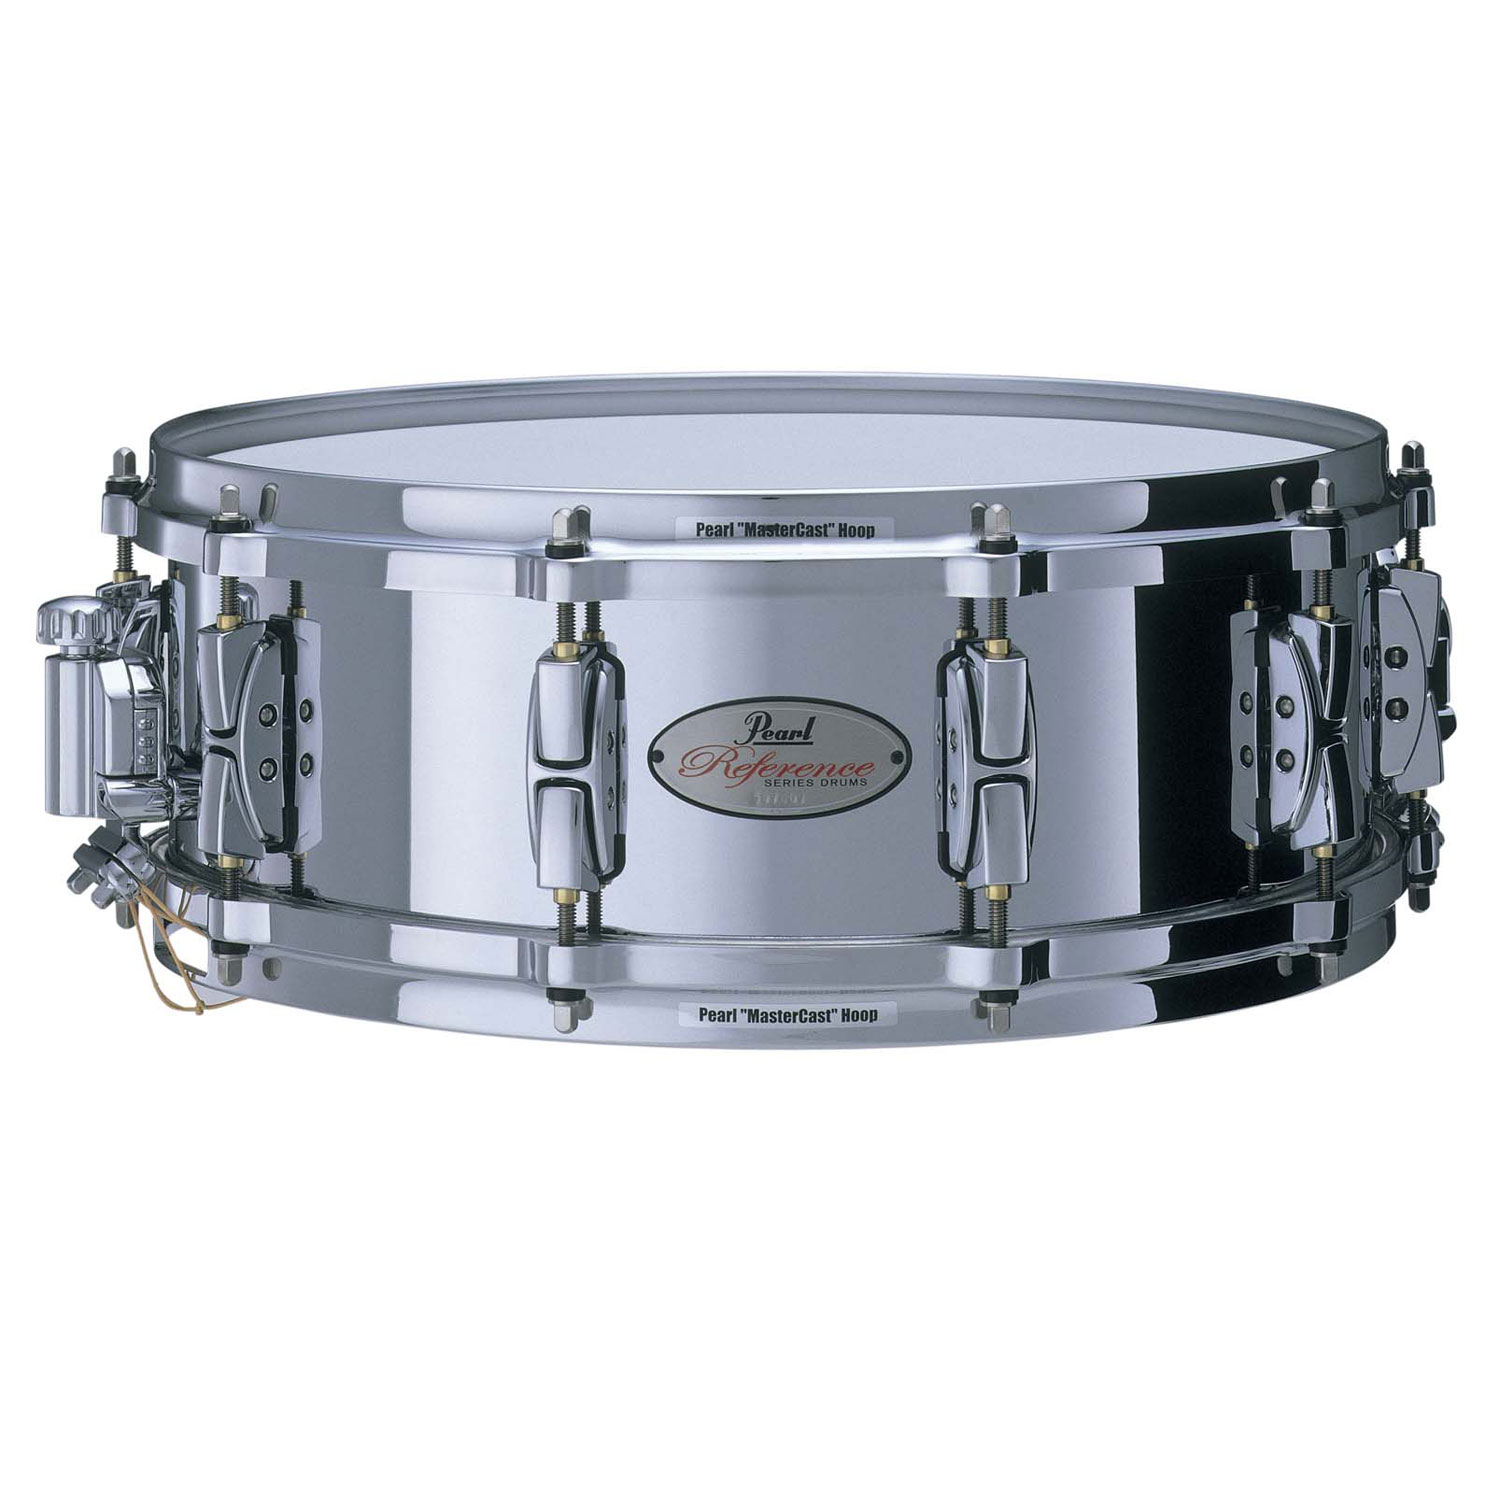 "Pearl 14"" x 5"" 3mm Cast Steel Snare Drum"